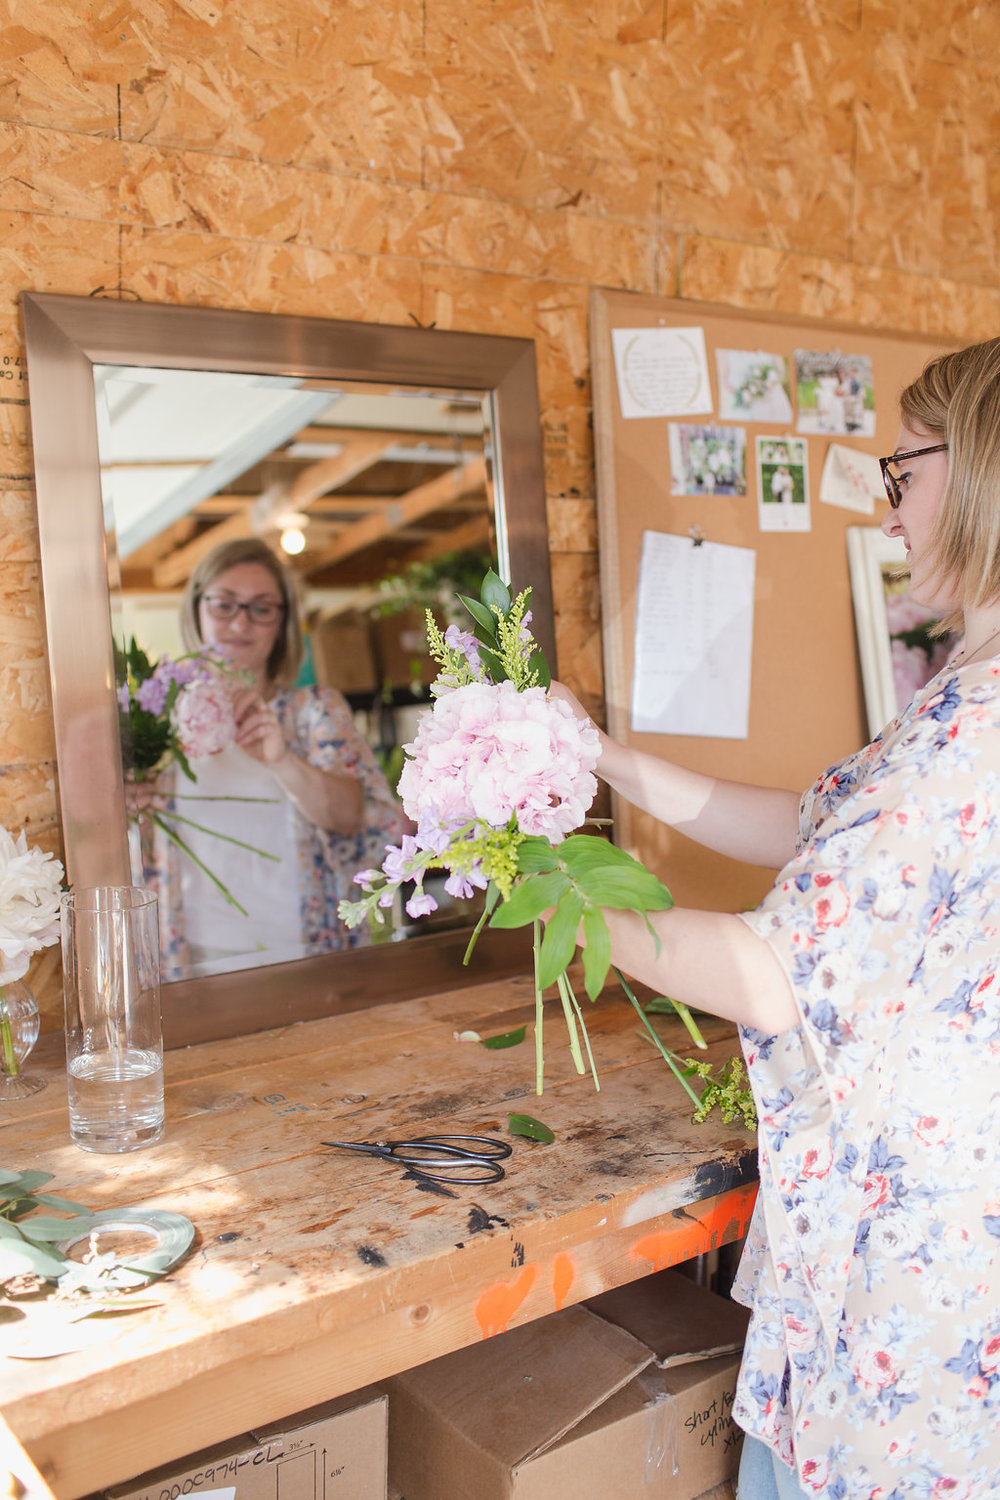 Stone House Creative - Florist Studio Tour